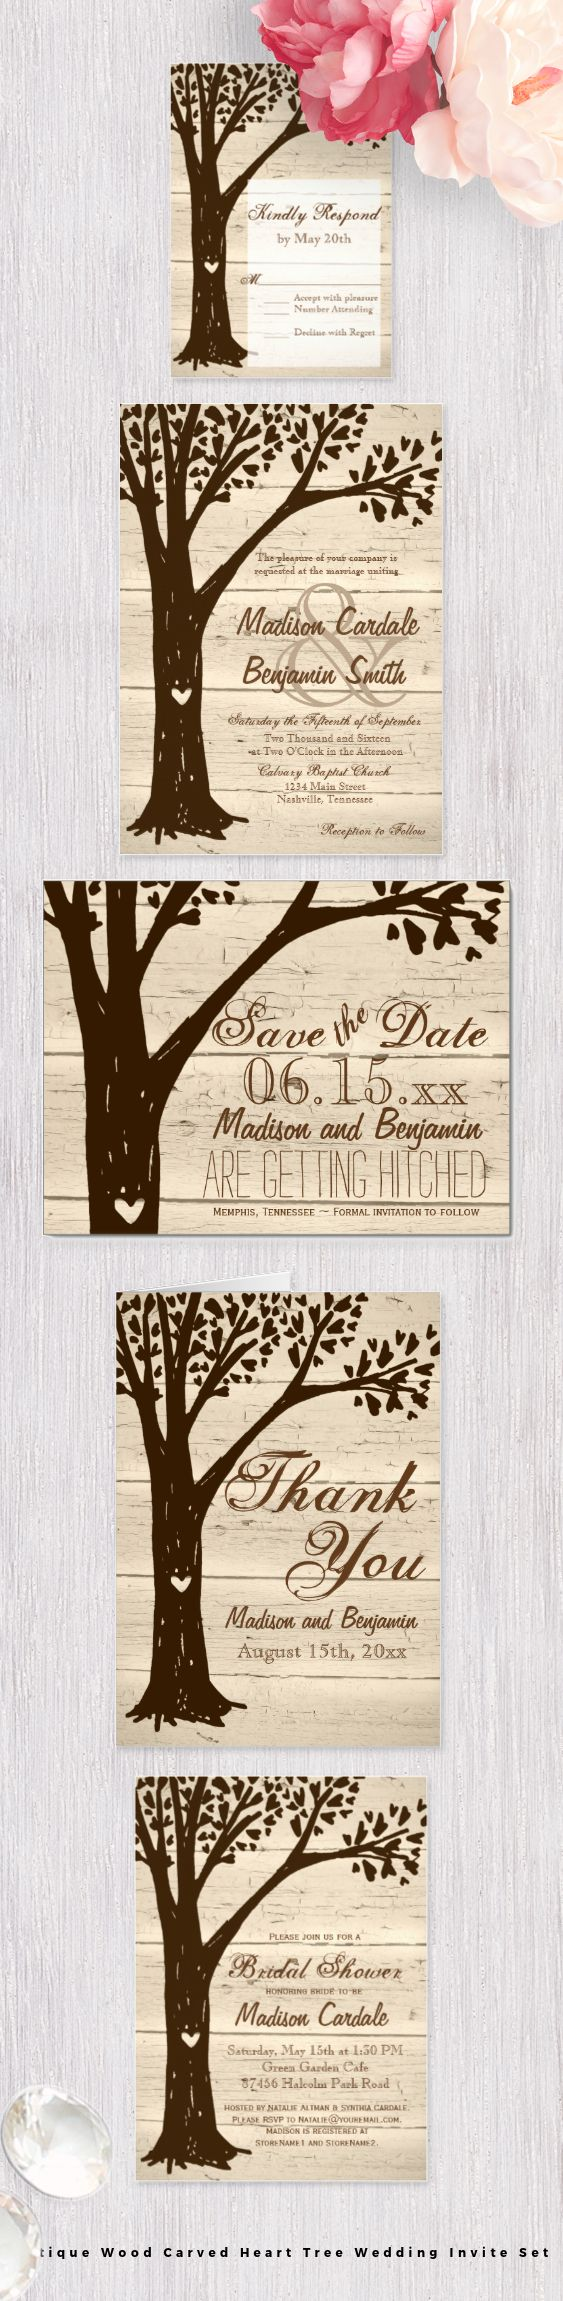 7421 best country style wedding invitations, ideas, inspirations, Wedding invitations